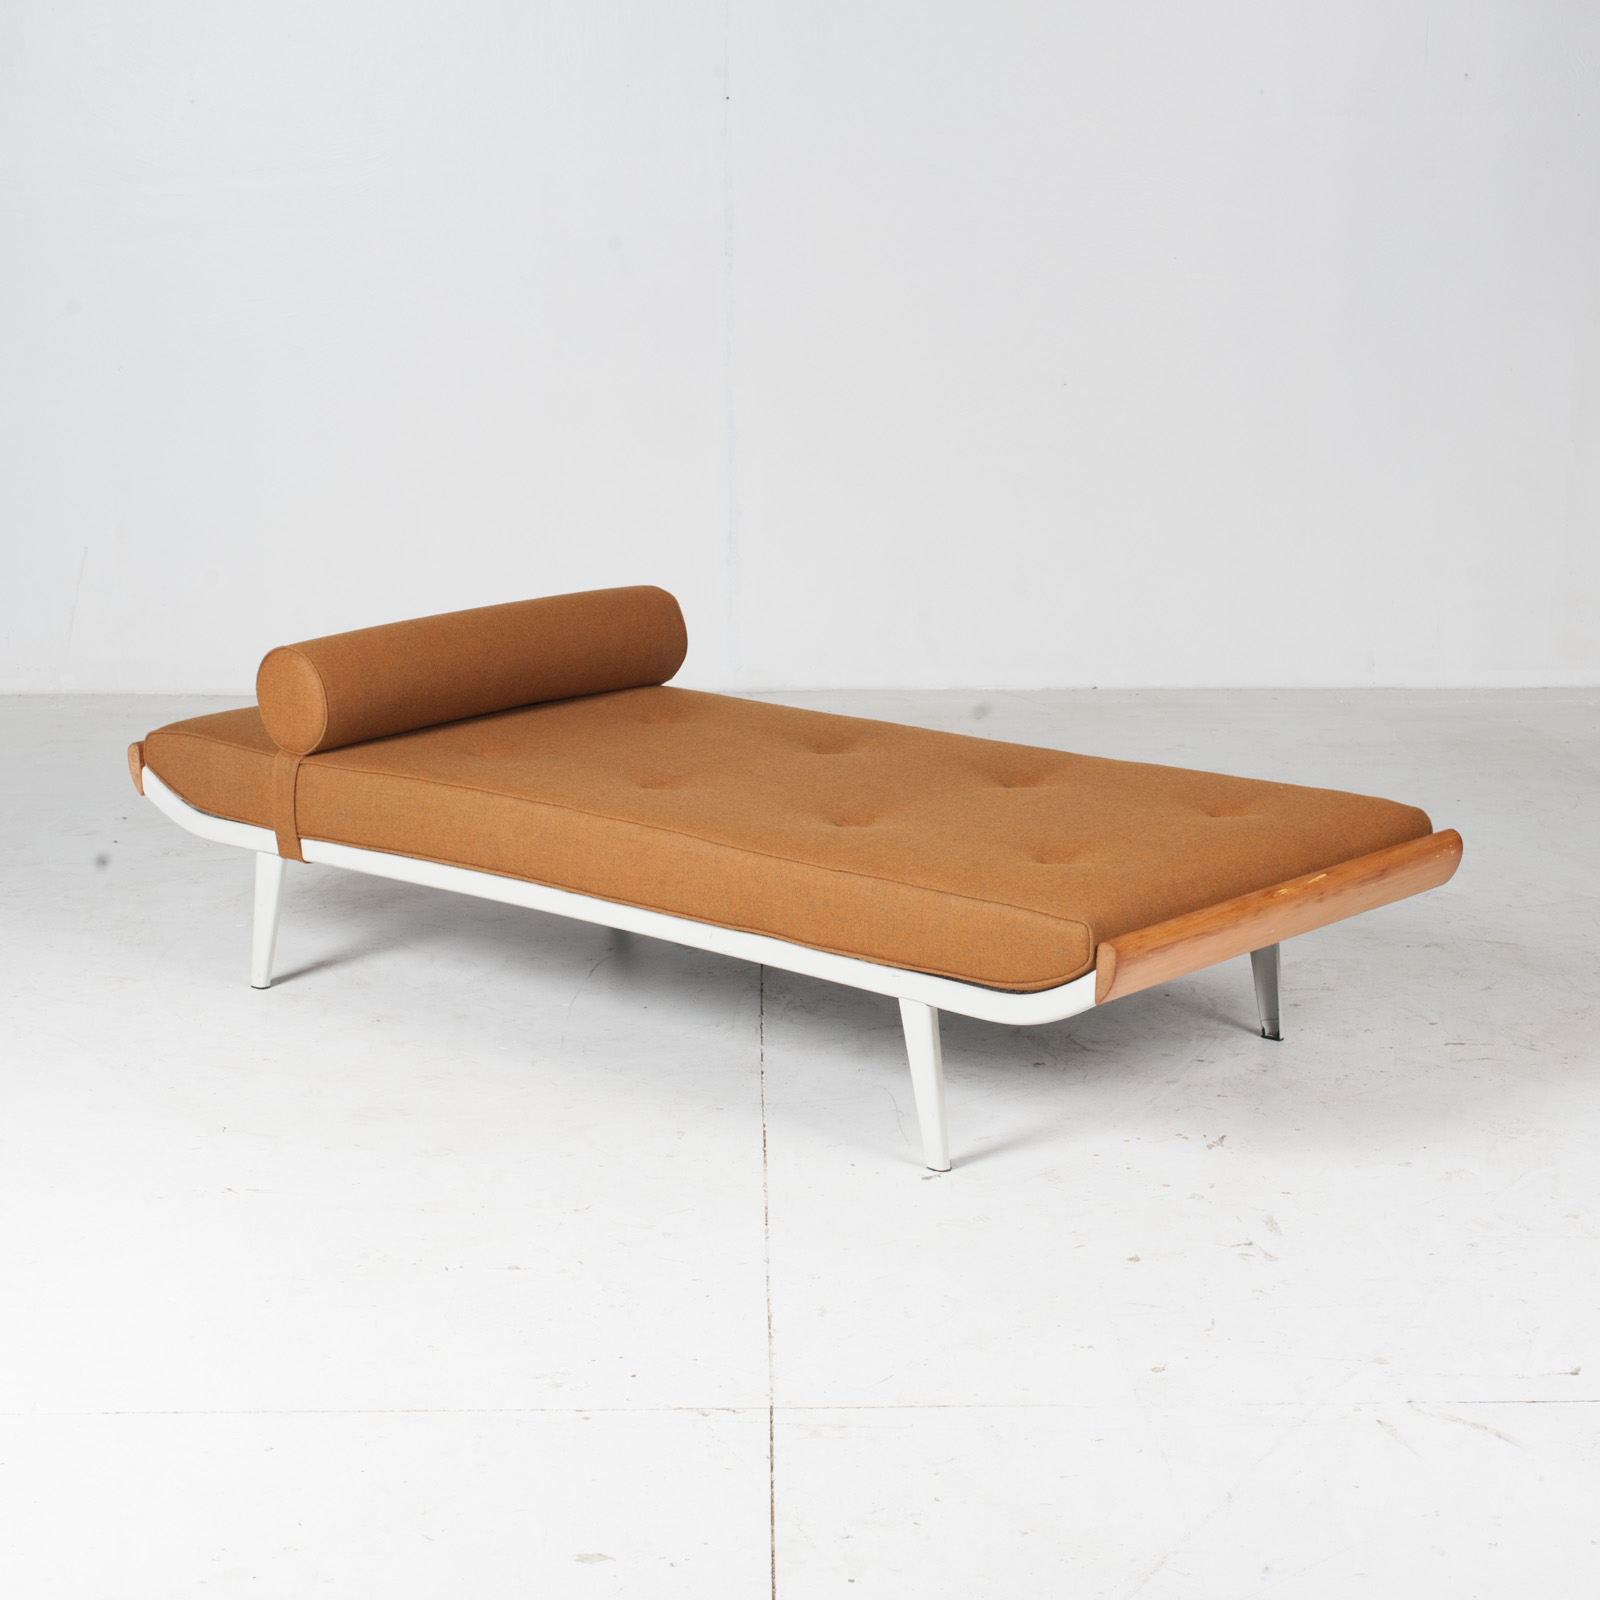 Cleopatra Daybed By Andre Cordemeyer For Auping In White Frame, 1950s, The Netherlands22